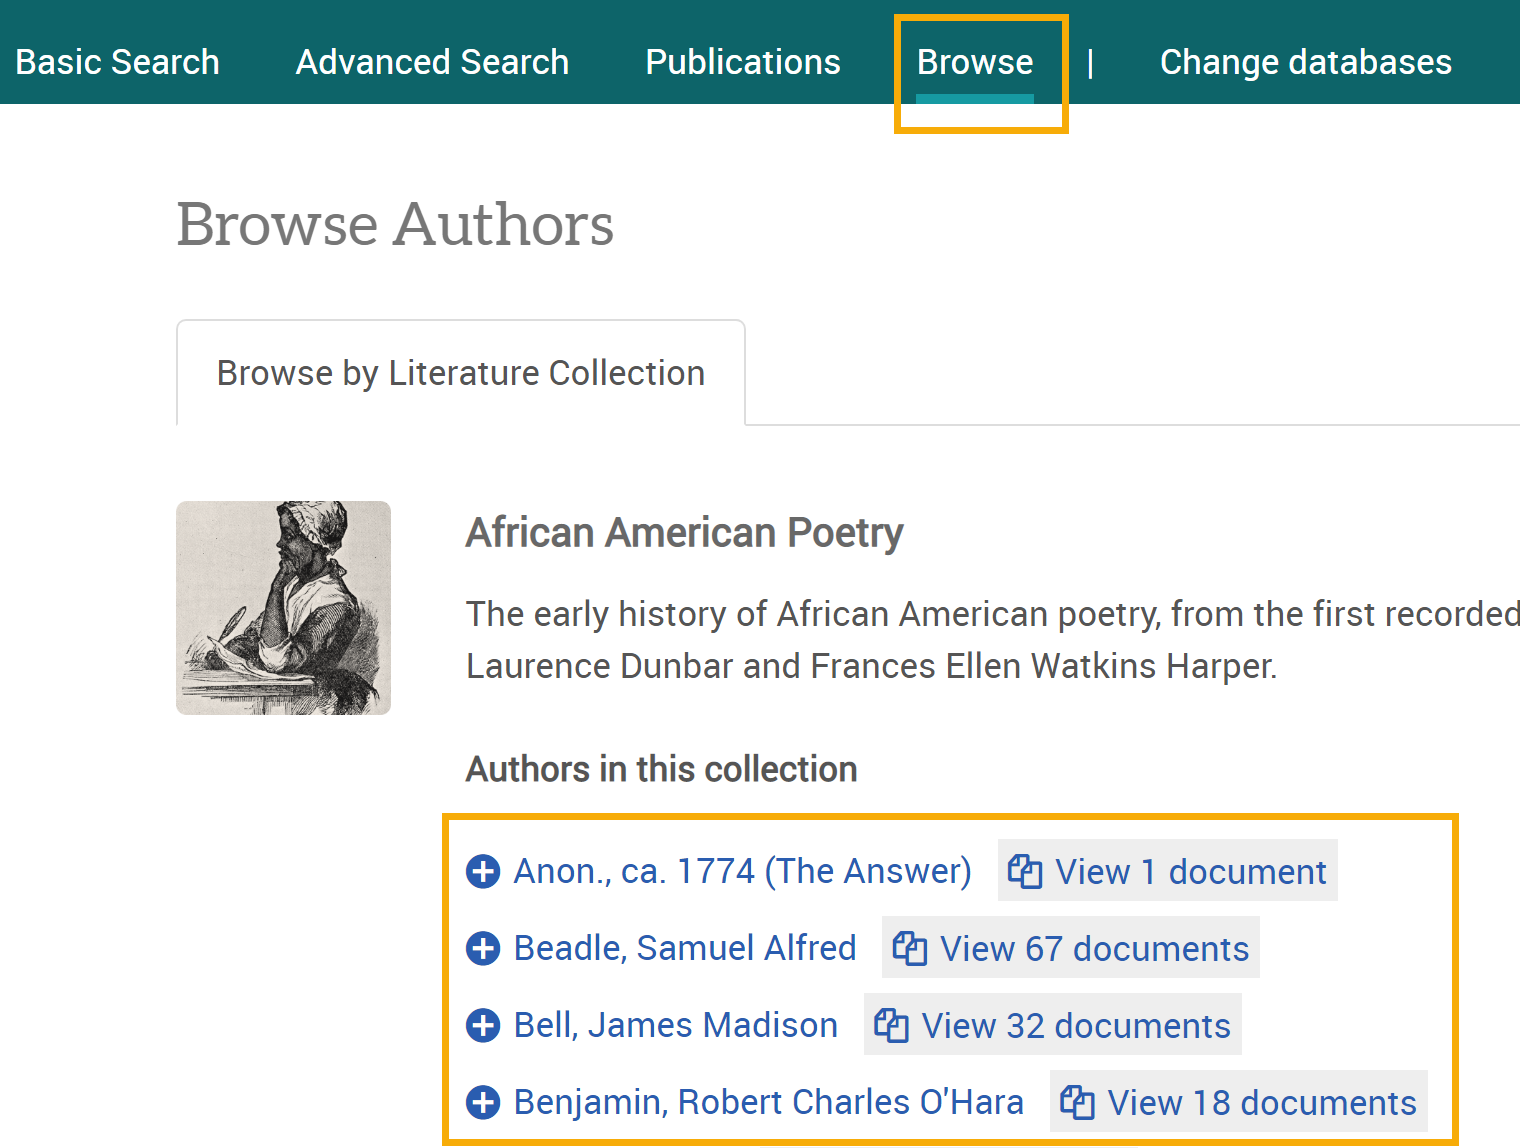 Screenshot of Browse Authors section